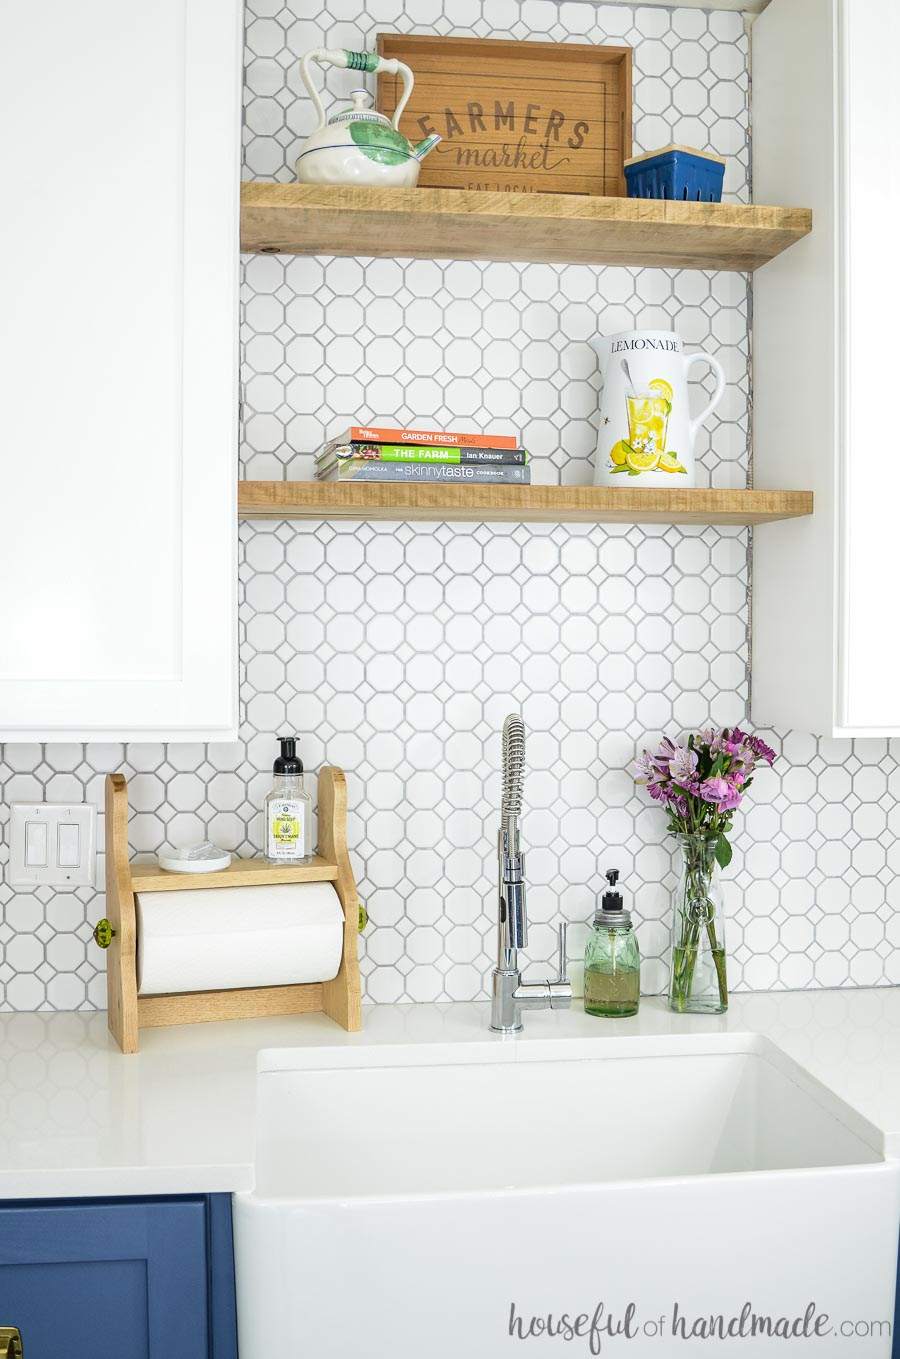 DIY farmhouse paper towel holder shown with farmers market tray on shelves